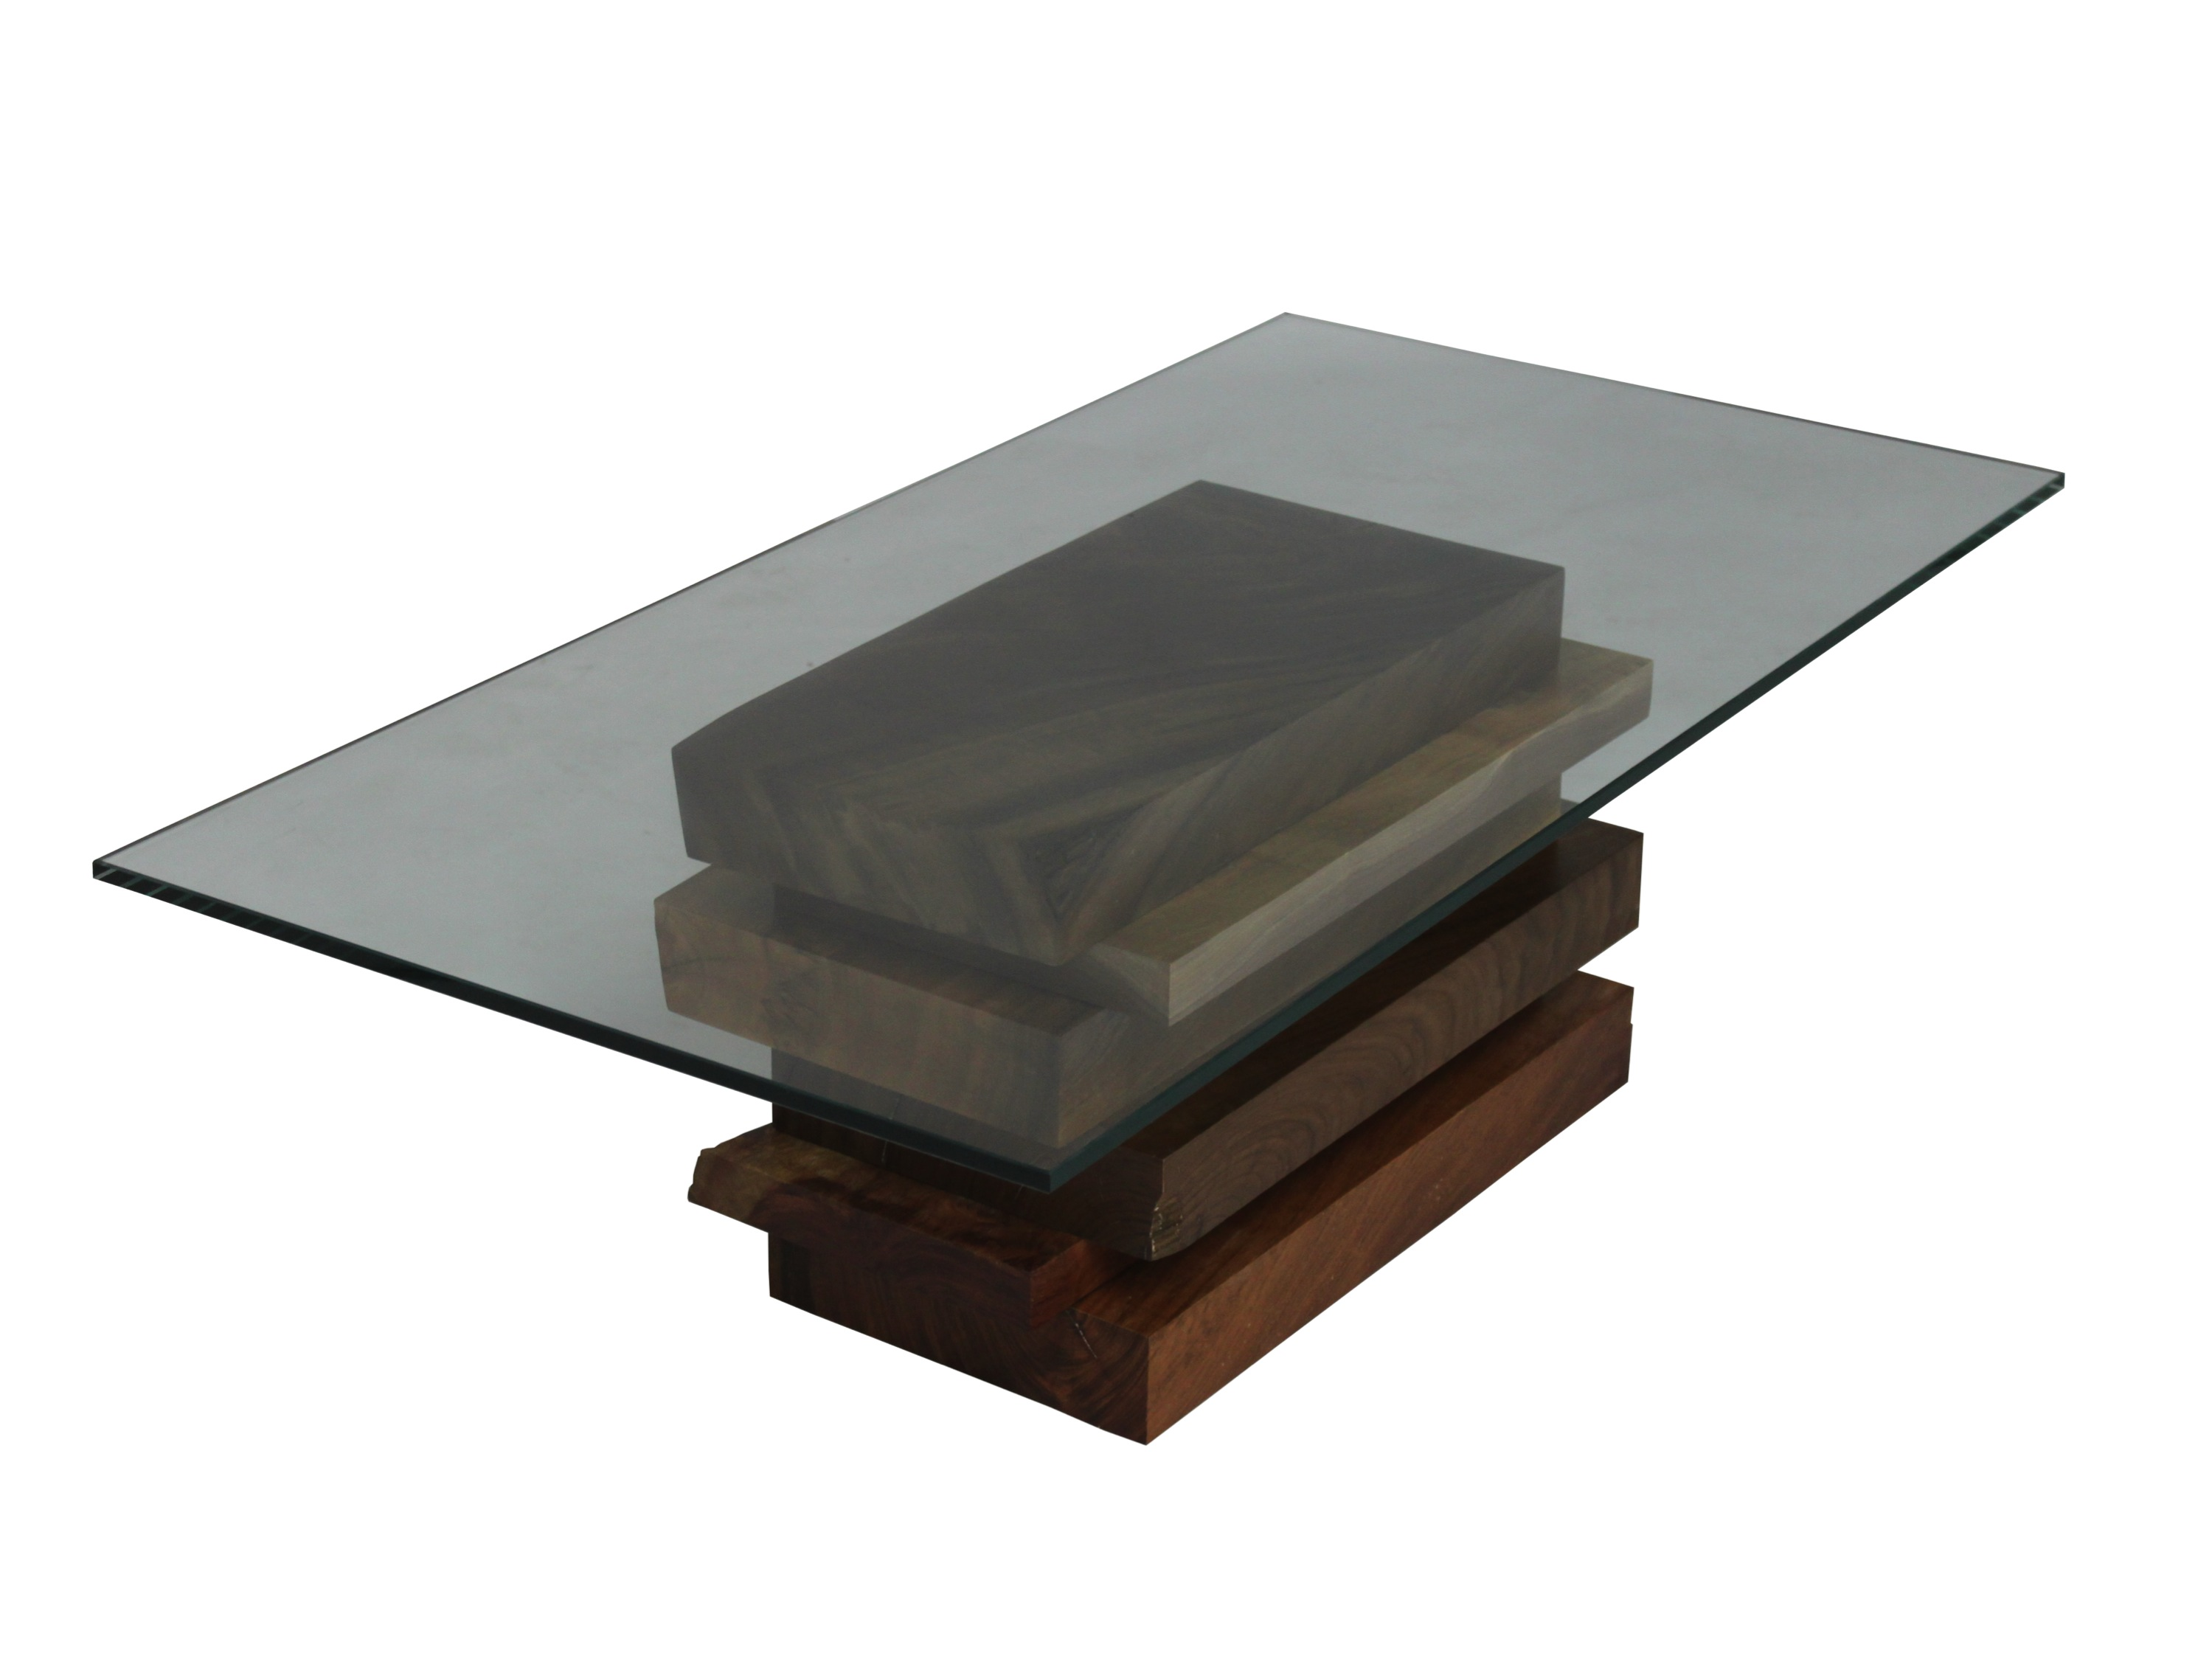 Custom Glass Coffee Tables Glass Top Coffee Table Made With Salvaged Wood Slabs In Raw Edge Or Straight Edges (Image 6 of 10)